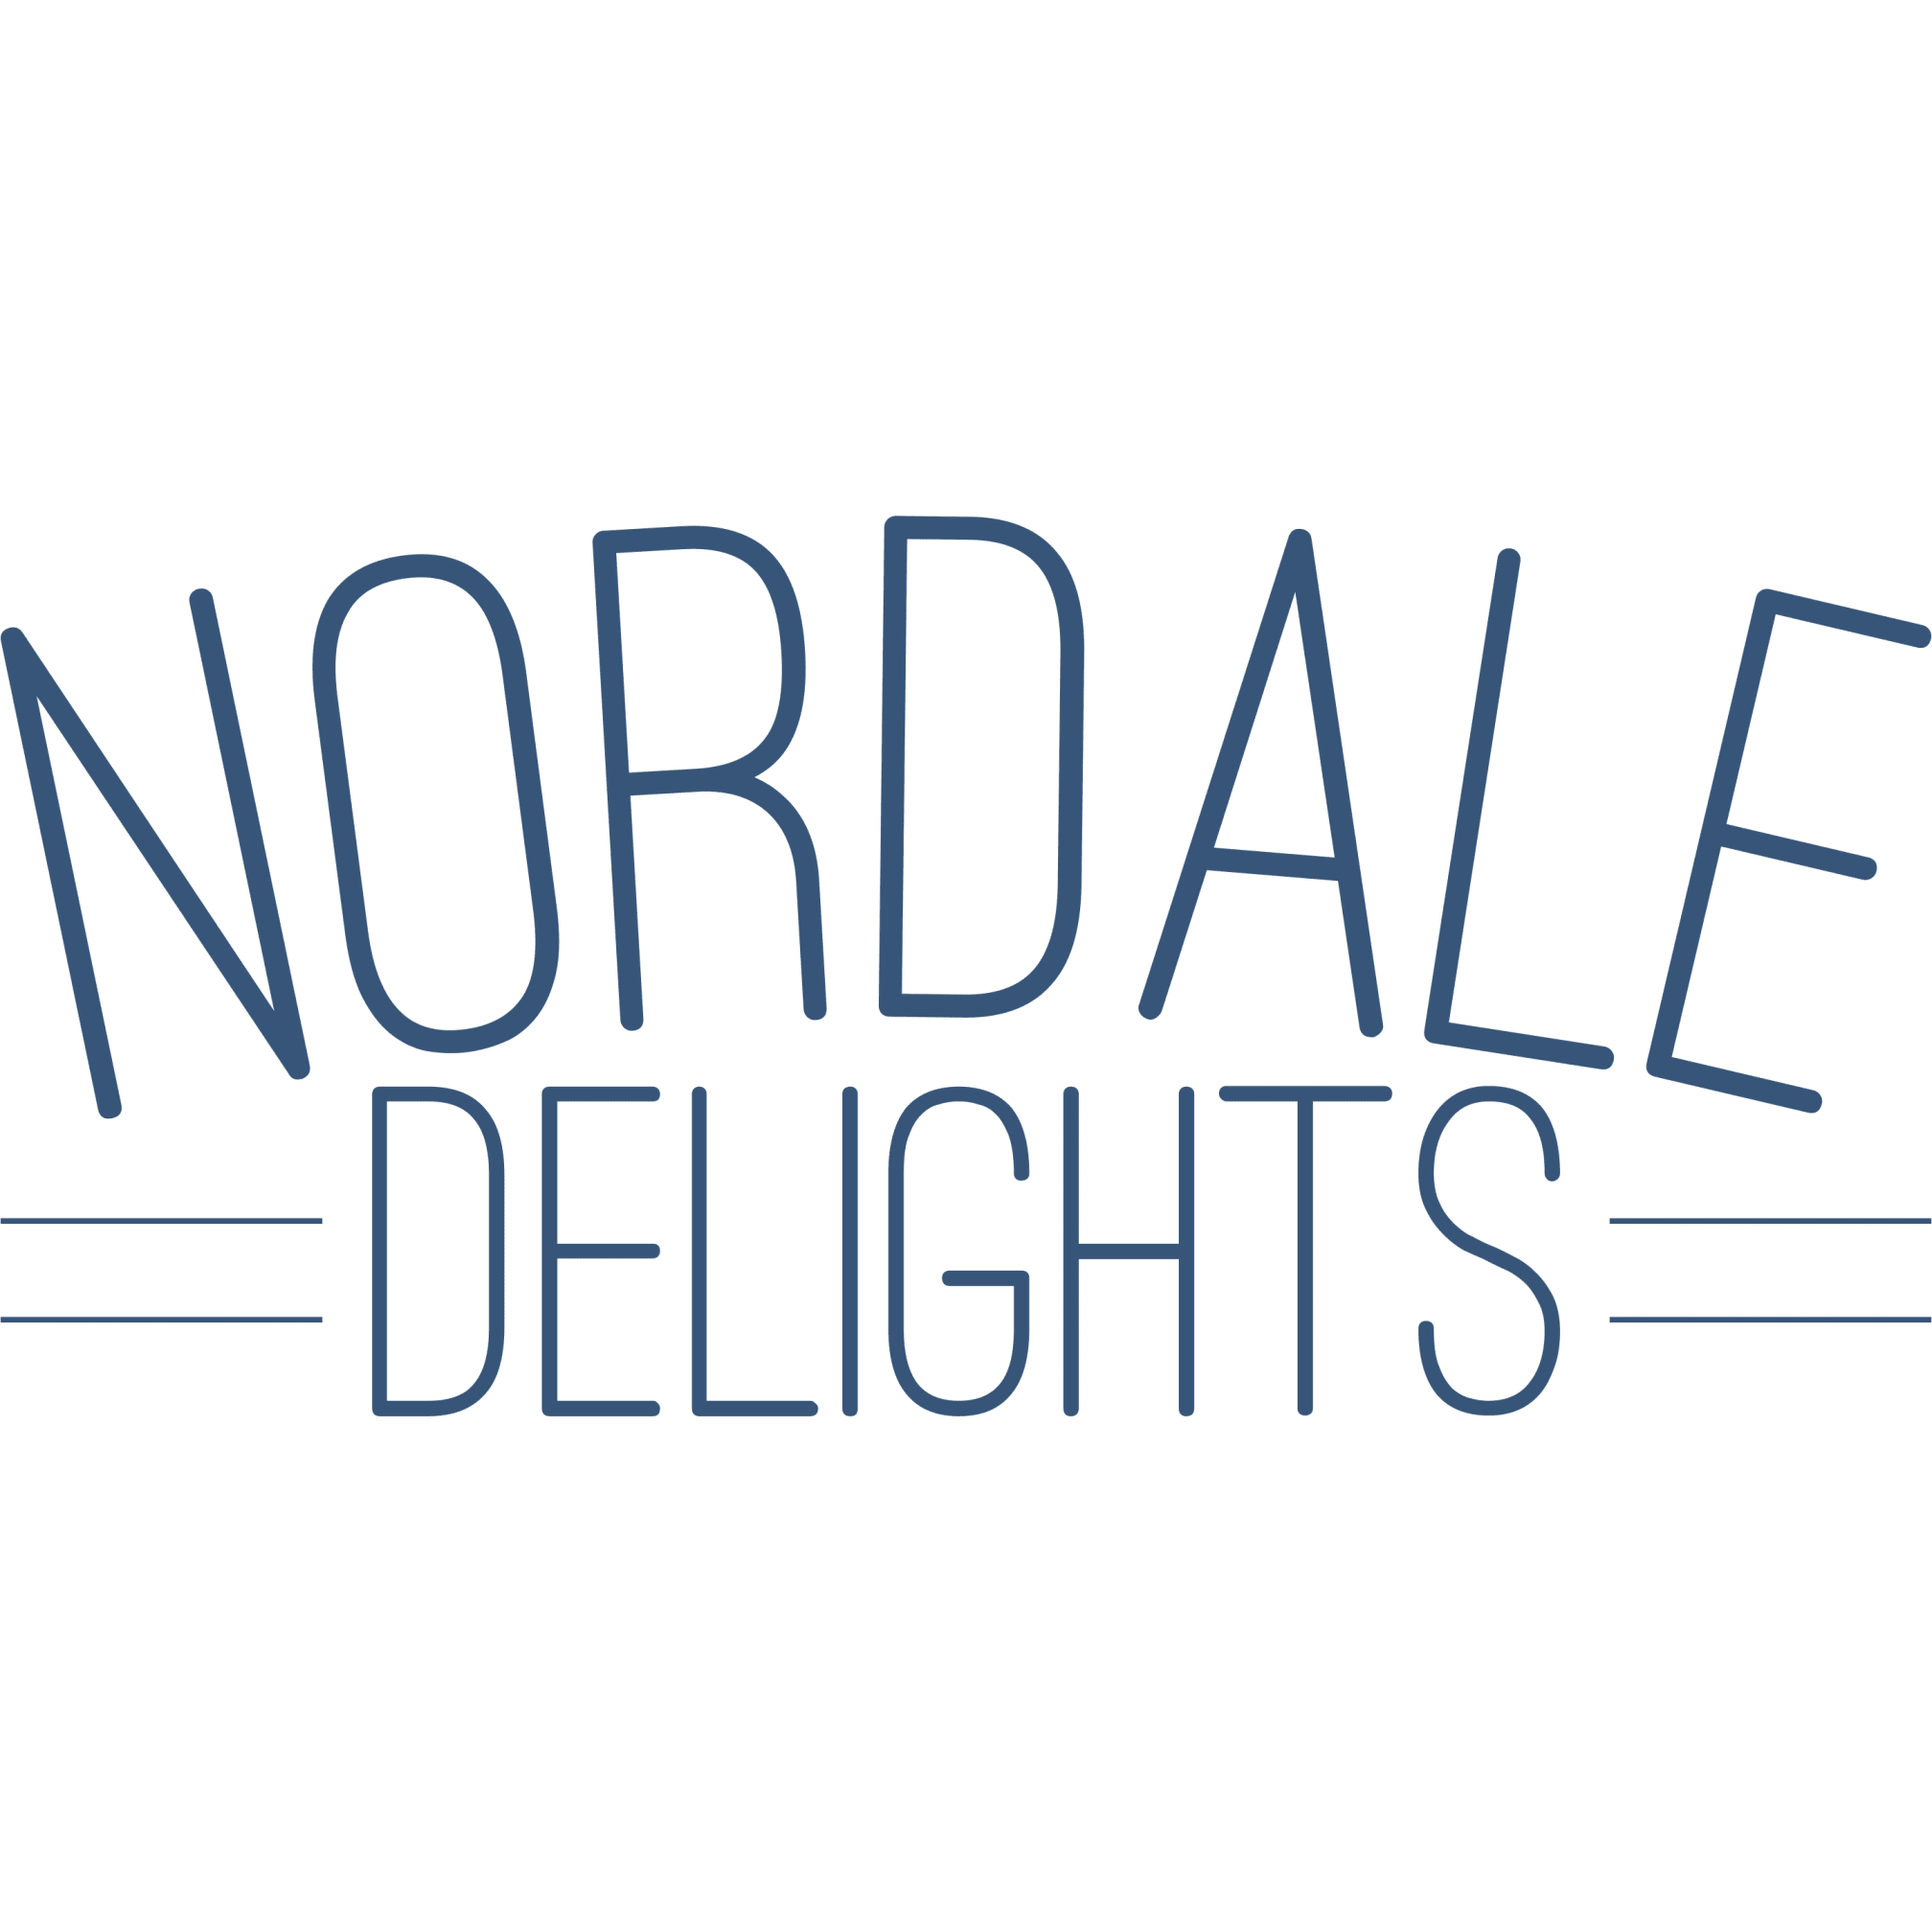 Nordale Delights - Wakefield, West Yorkshire WF2 7AN - 01924 921732 | ShowMeLocal.com